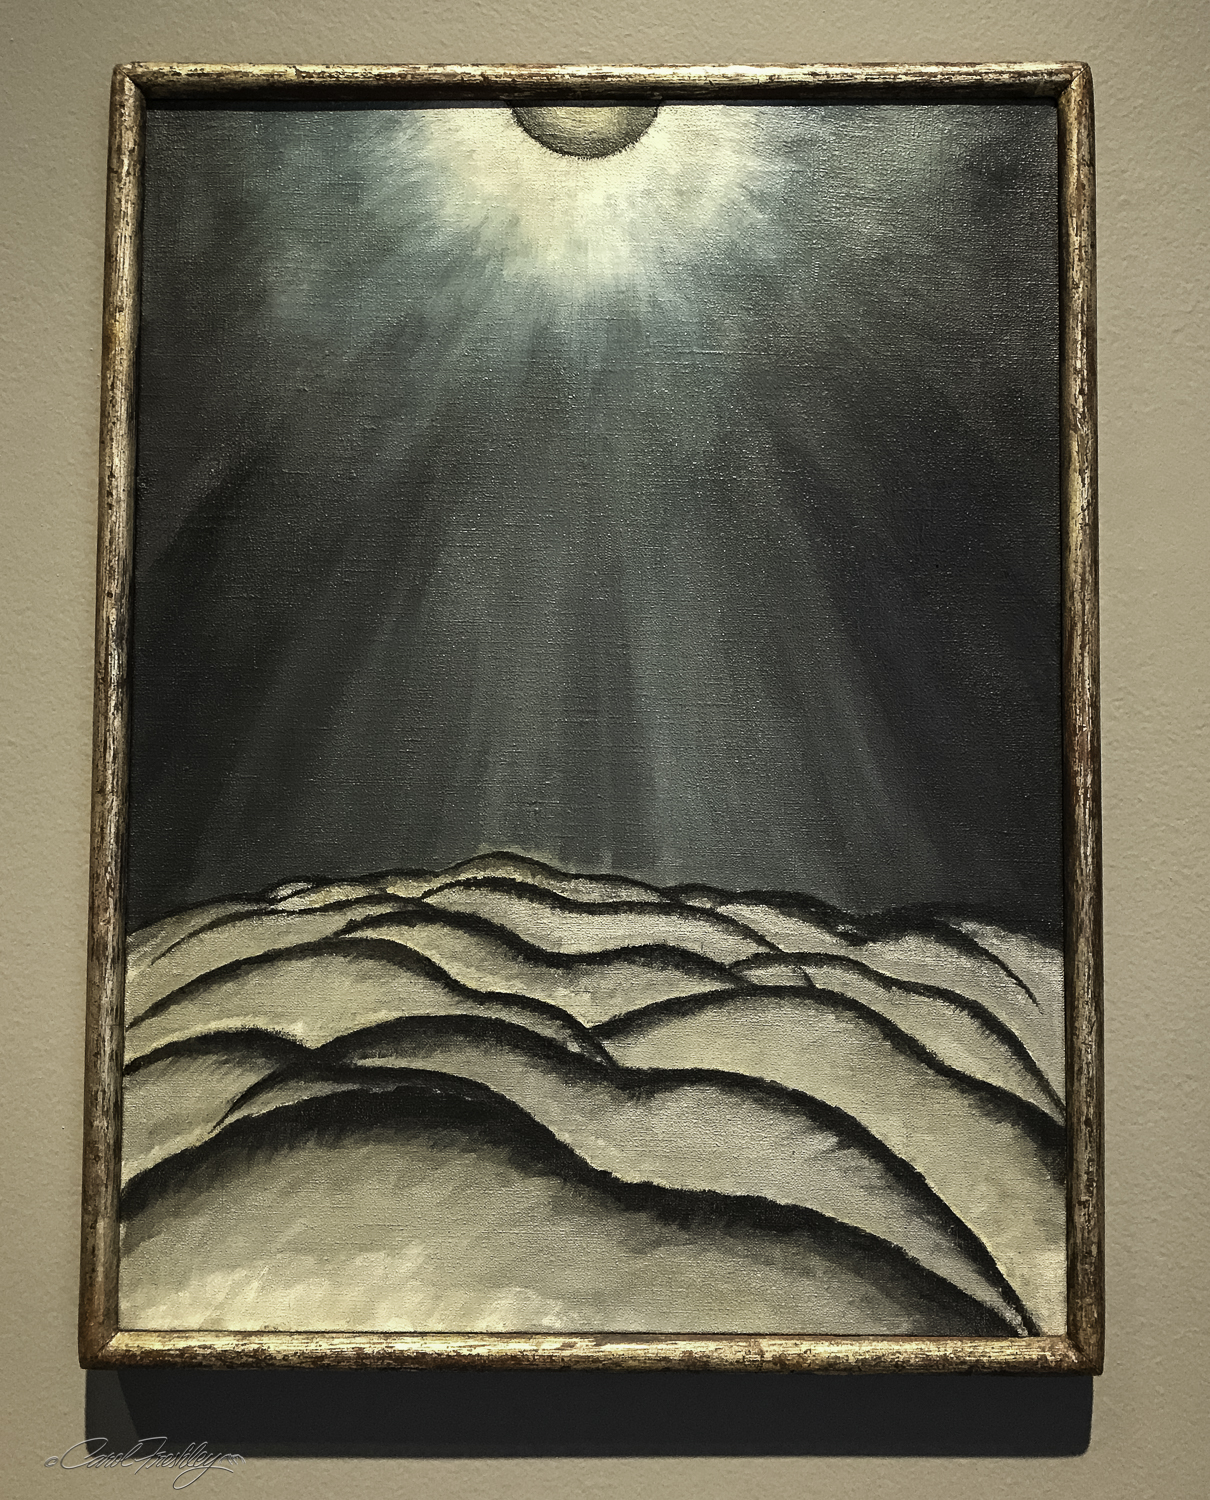 "I loved this painting!  It was done by Arthur Dove (1880-1946) and is titled, Moon and Sea No. II.  Dove describes the storm he was hoping to express, ""It is now 3:45 a.m. in the midst of a terrific gale and we are anchored in the middle of Manhasset Bay, held by a 3/4 inch line run through a shackle to a mooring.  Have been trying to memorize this storm all day so I can paint it.  Storm green and storm gray.""  Dove is considered America's first abstract painter, striving to make the basic processes of nature visible in his work."